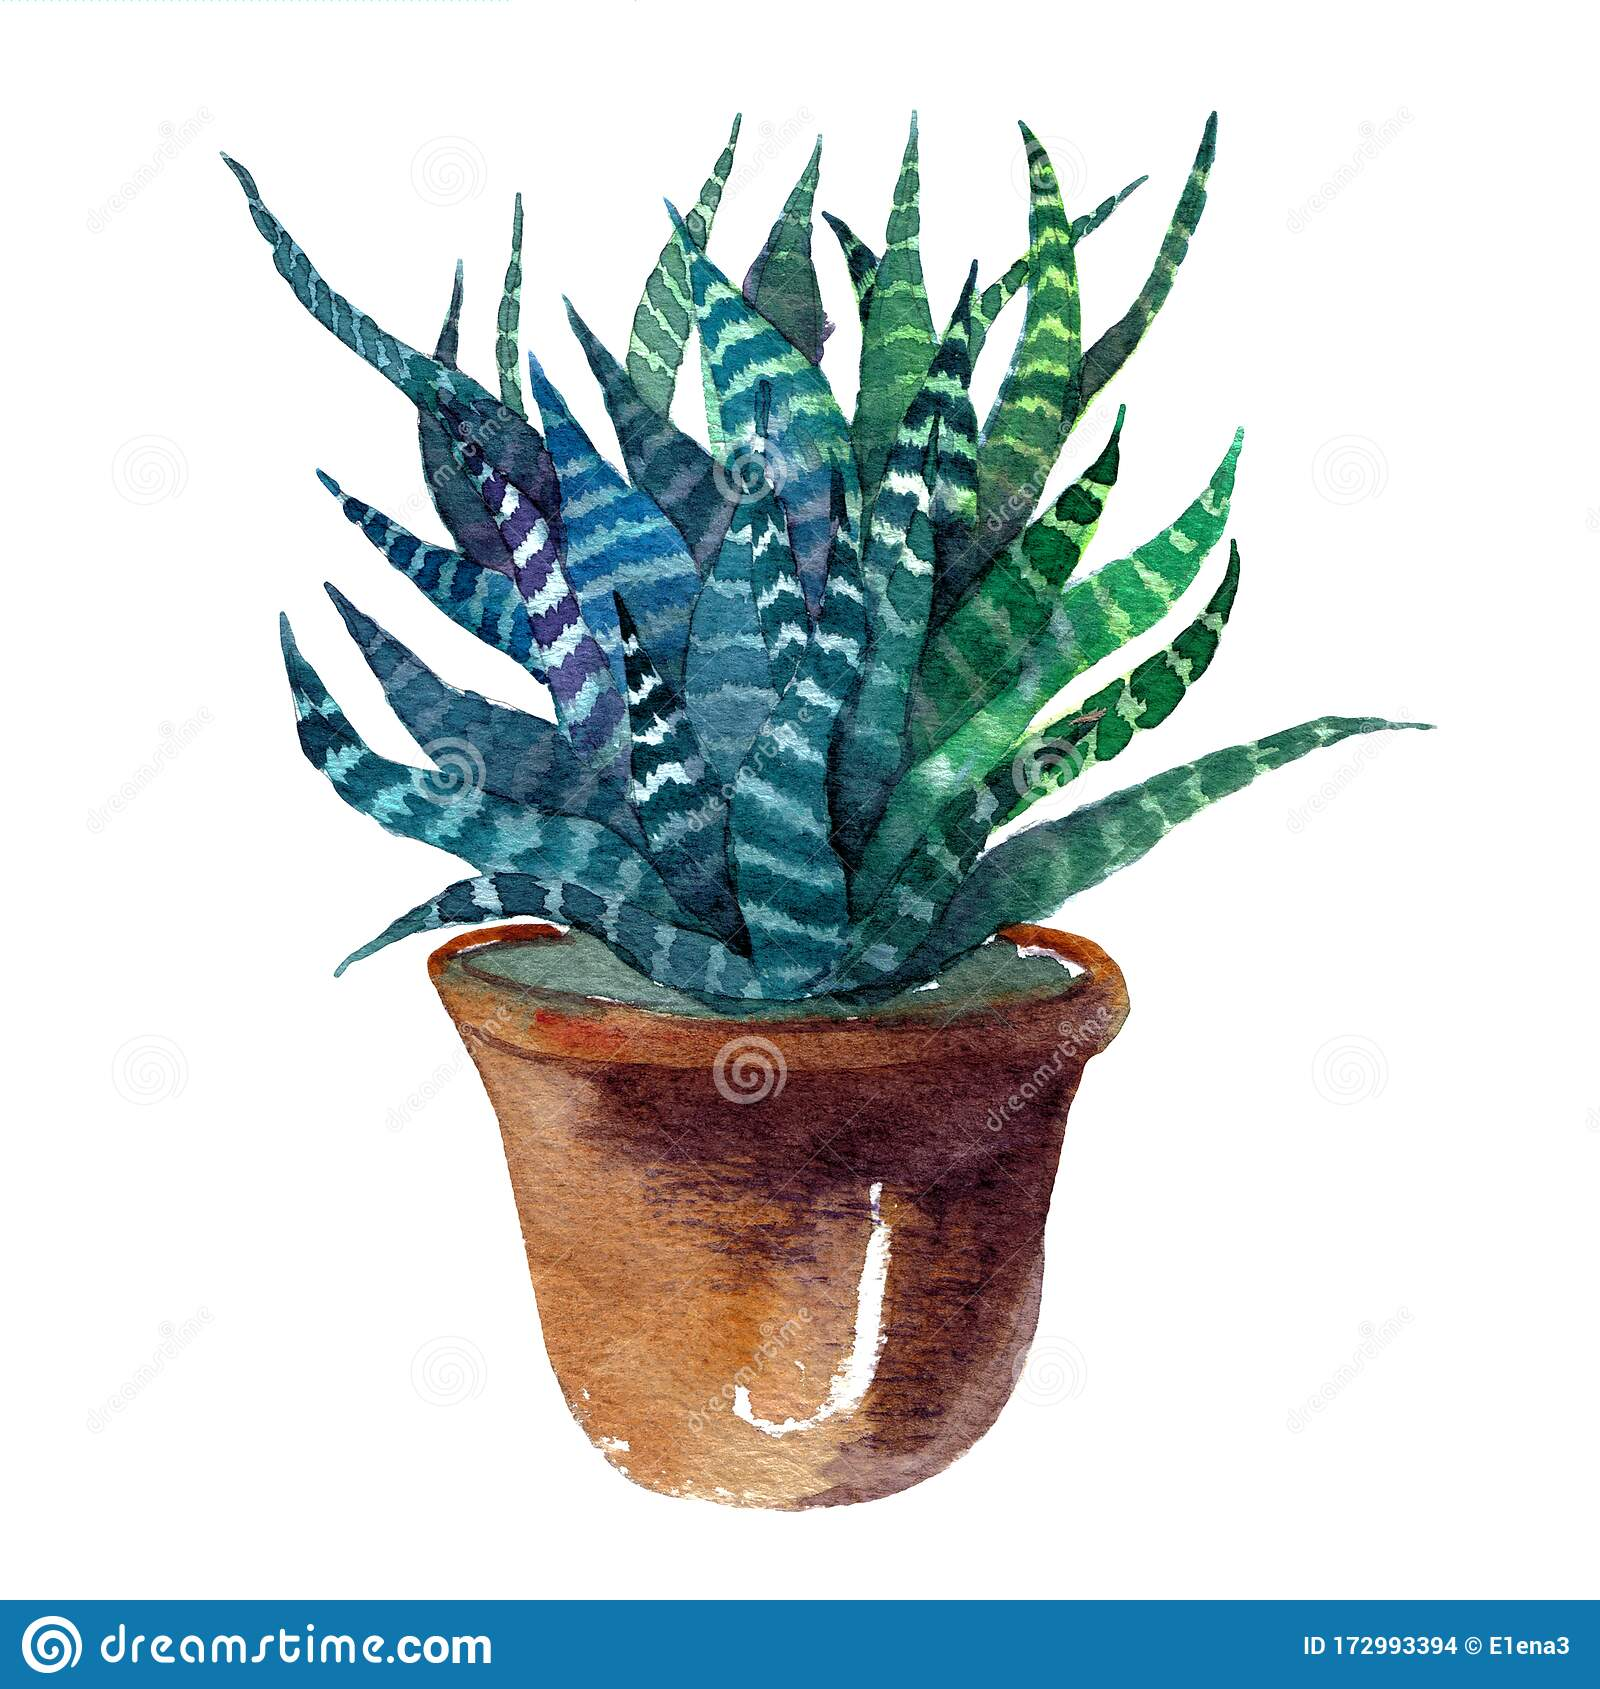 Watercolor Drawing Of A Cactus Succulents In Pots In The Scandinavian Style Stock Illustration Illustration Of Cactus Coloured 172993394